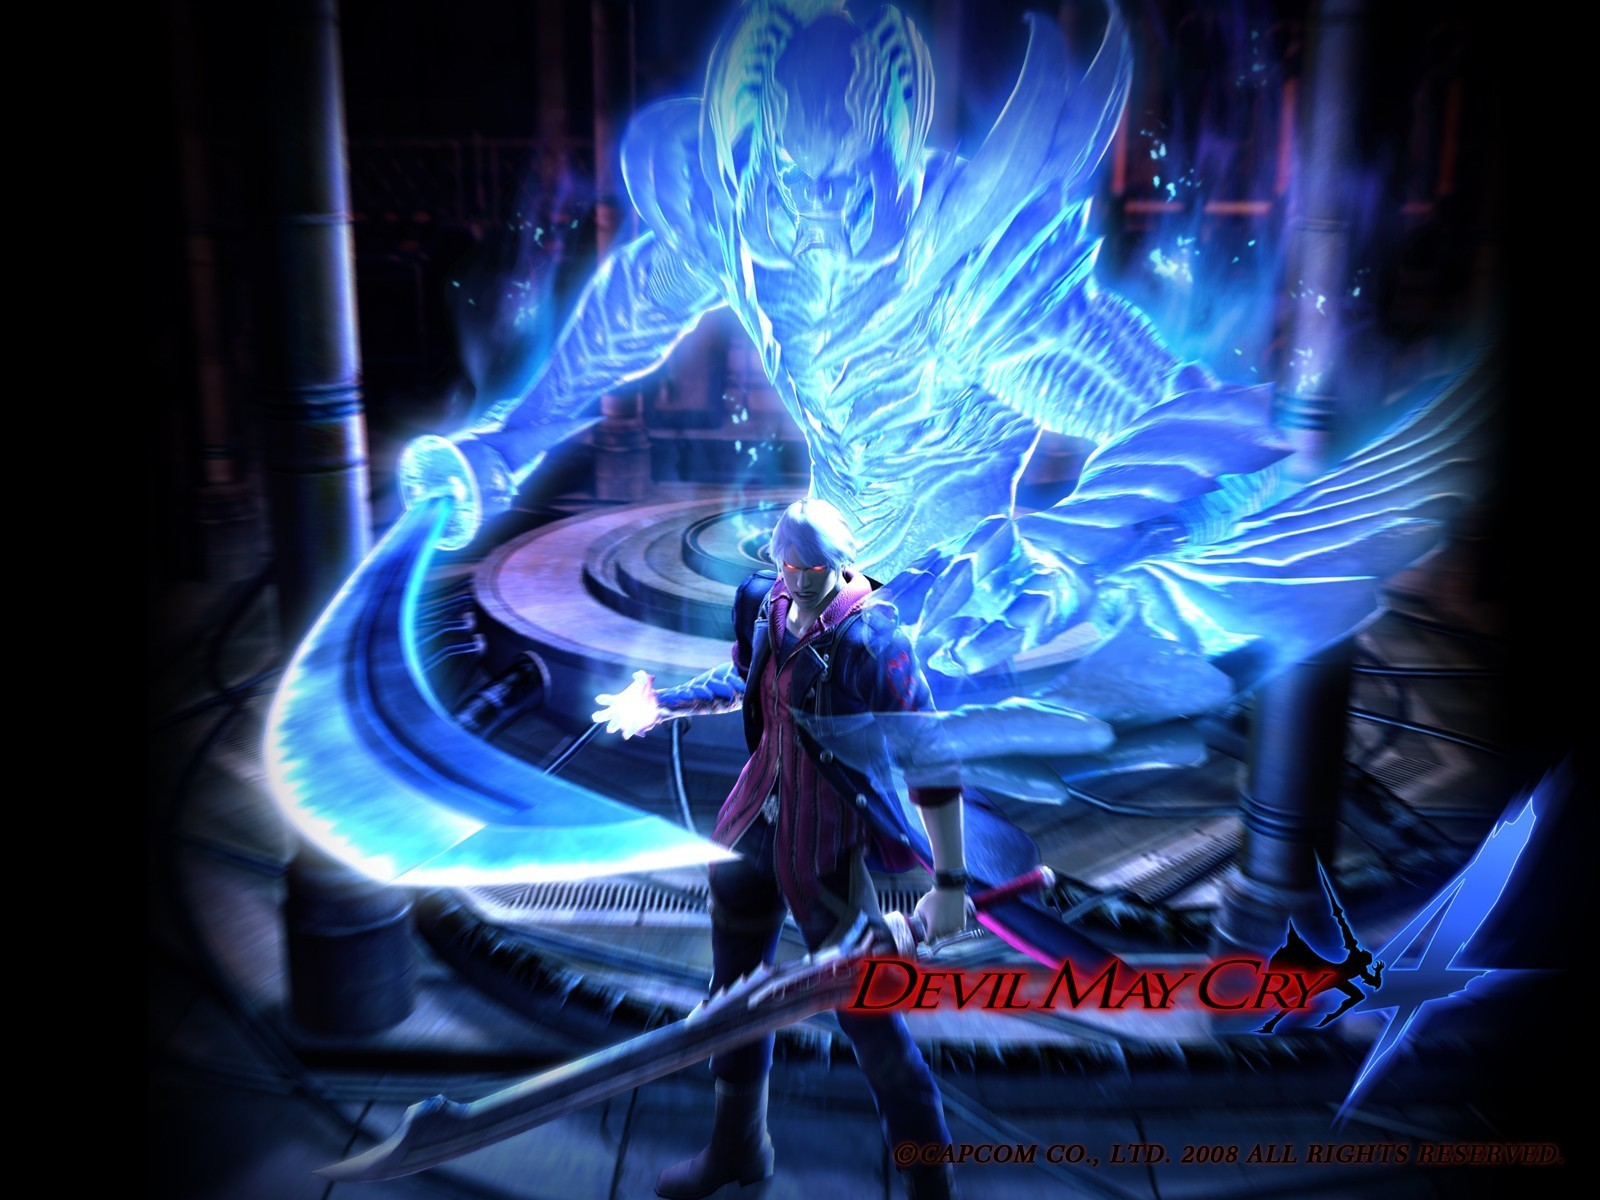 Devil May Cry 4 images Devil May Cry 4 wallpaper photos 10480378 1600x1200